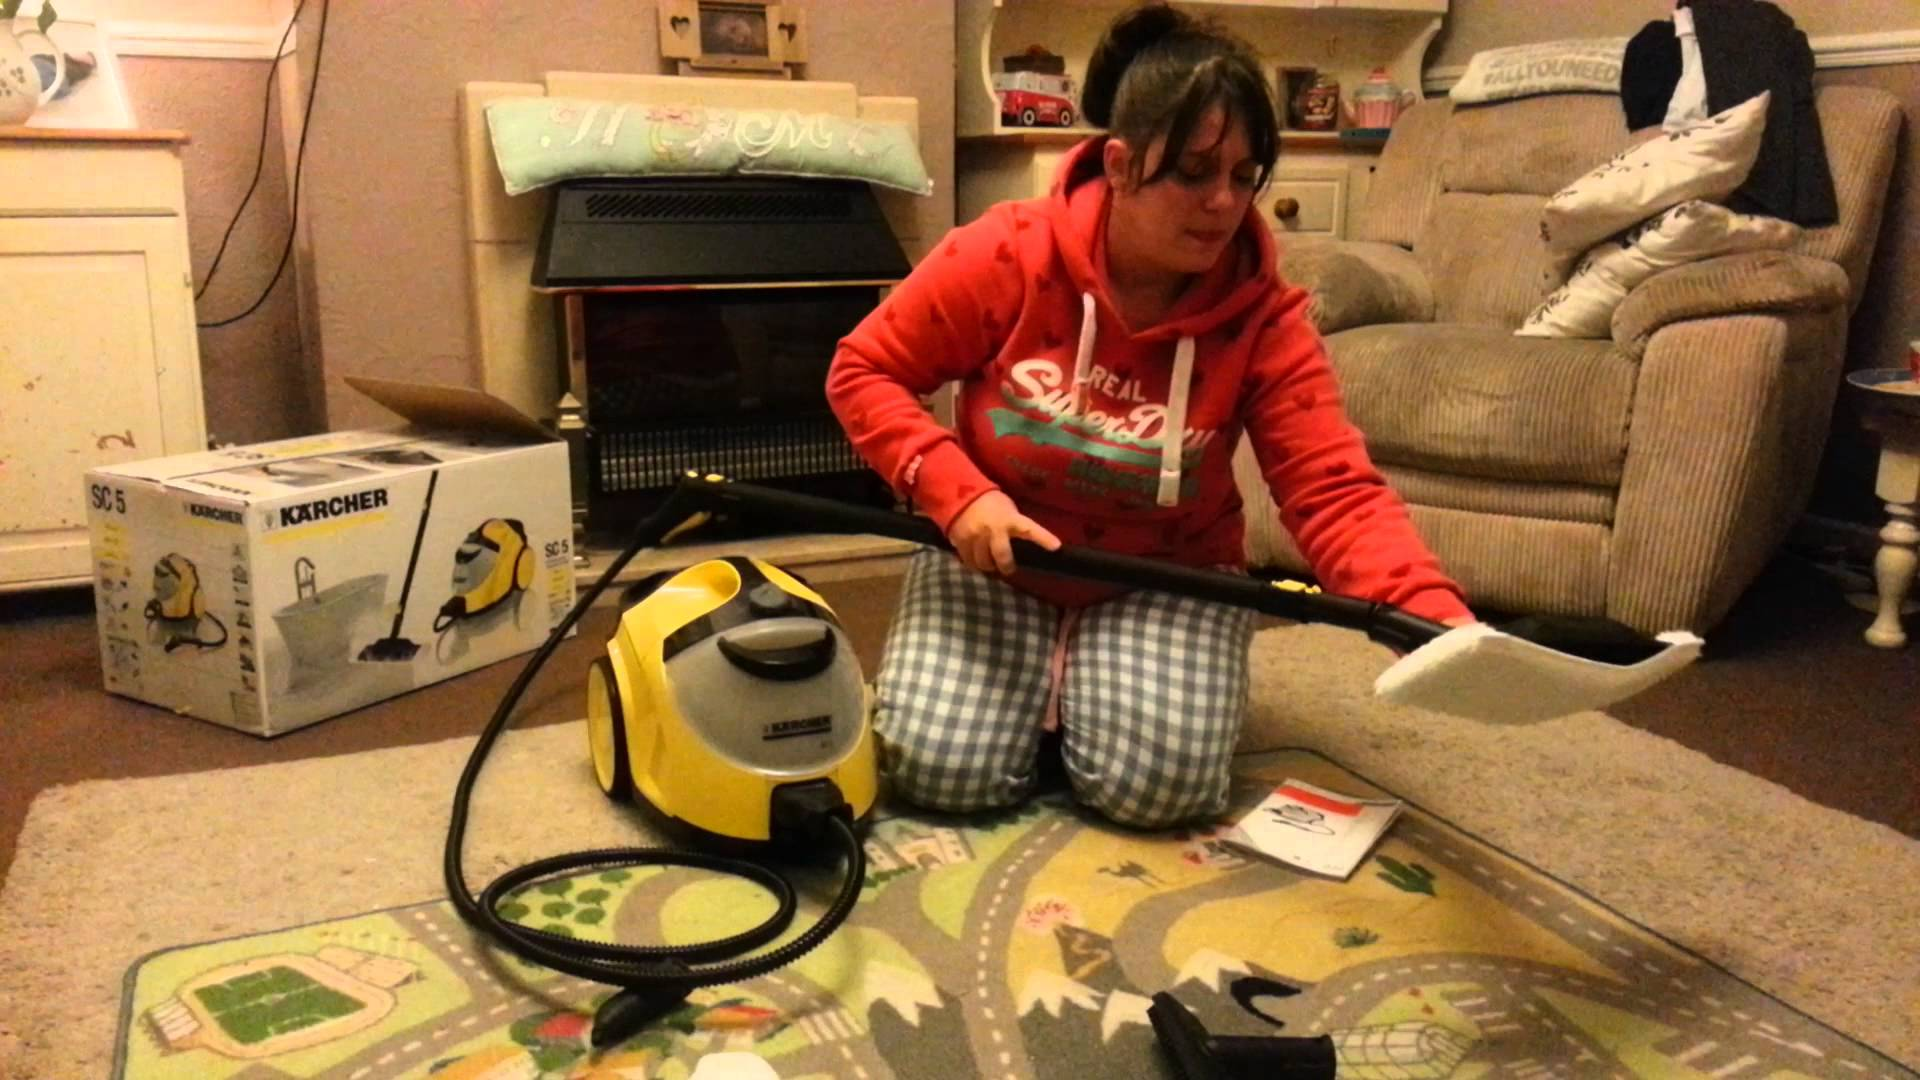 Karcher SC5 steam cleaner!